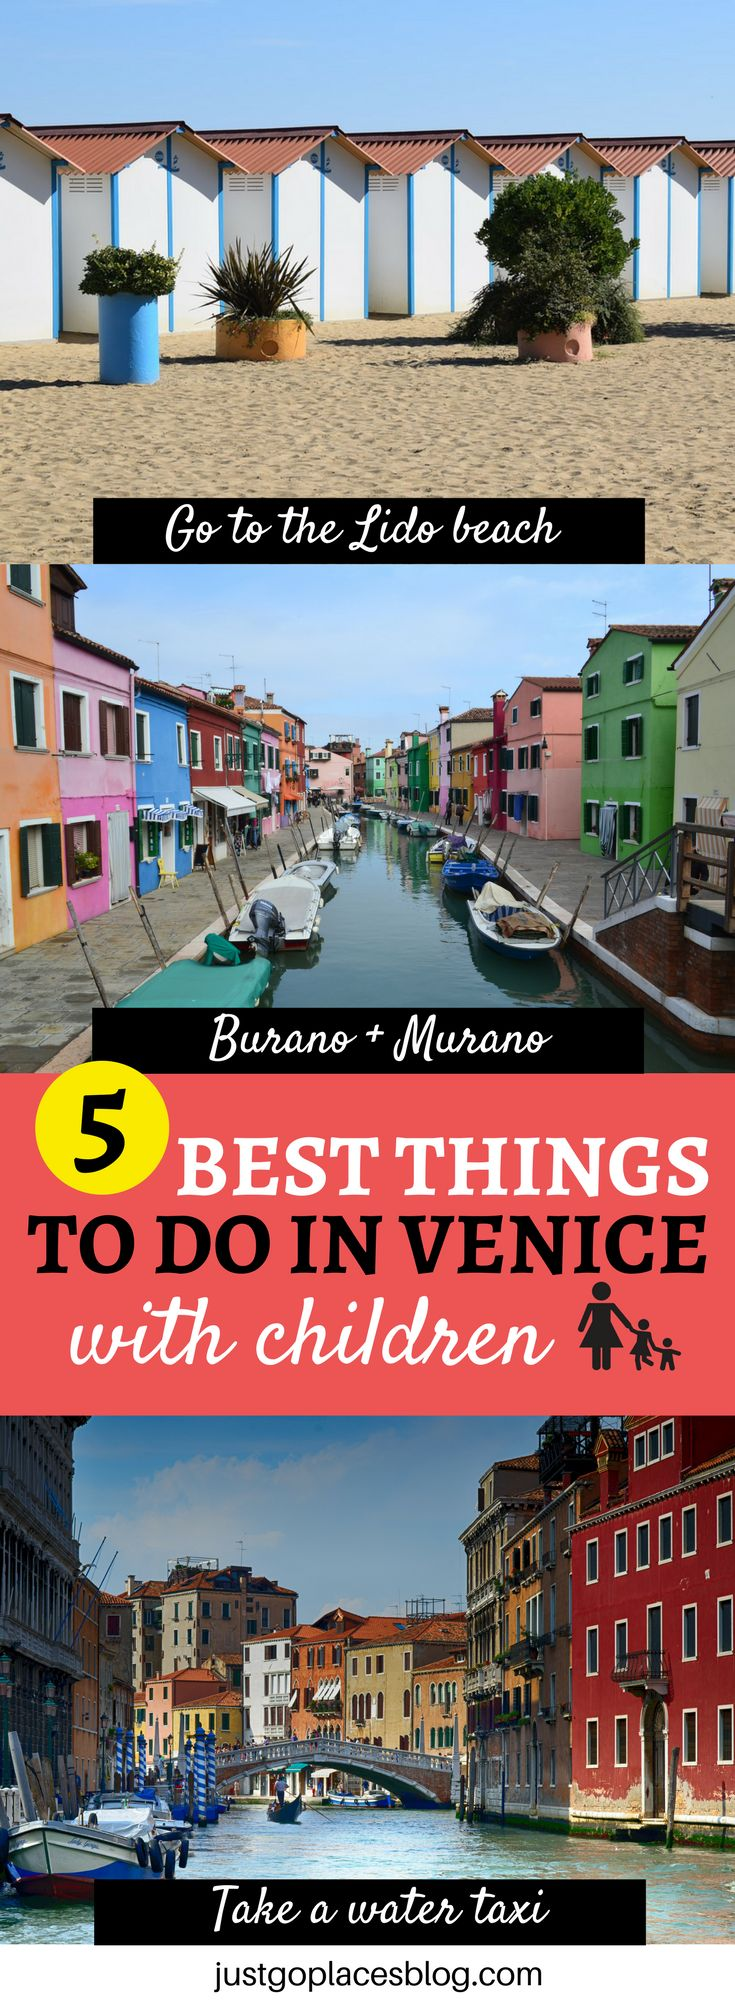 5 best things to do in Venice with children: it includes speeding on a water taxi, spending some time at the Lido Beach, discovering the islands of Burano and Murano and more! | what to do in Venice, Italy | Venice with kids | Venice travel guide #venice #veniceitaly #venezia - via @justgoplaces